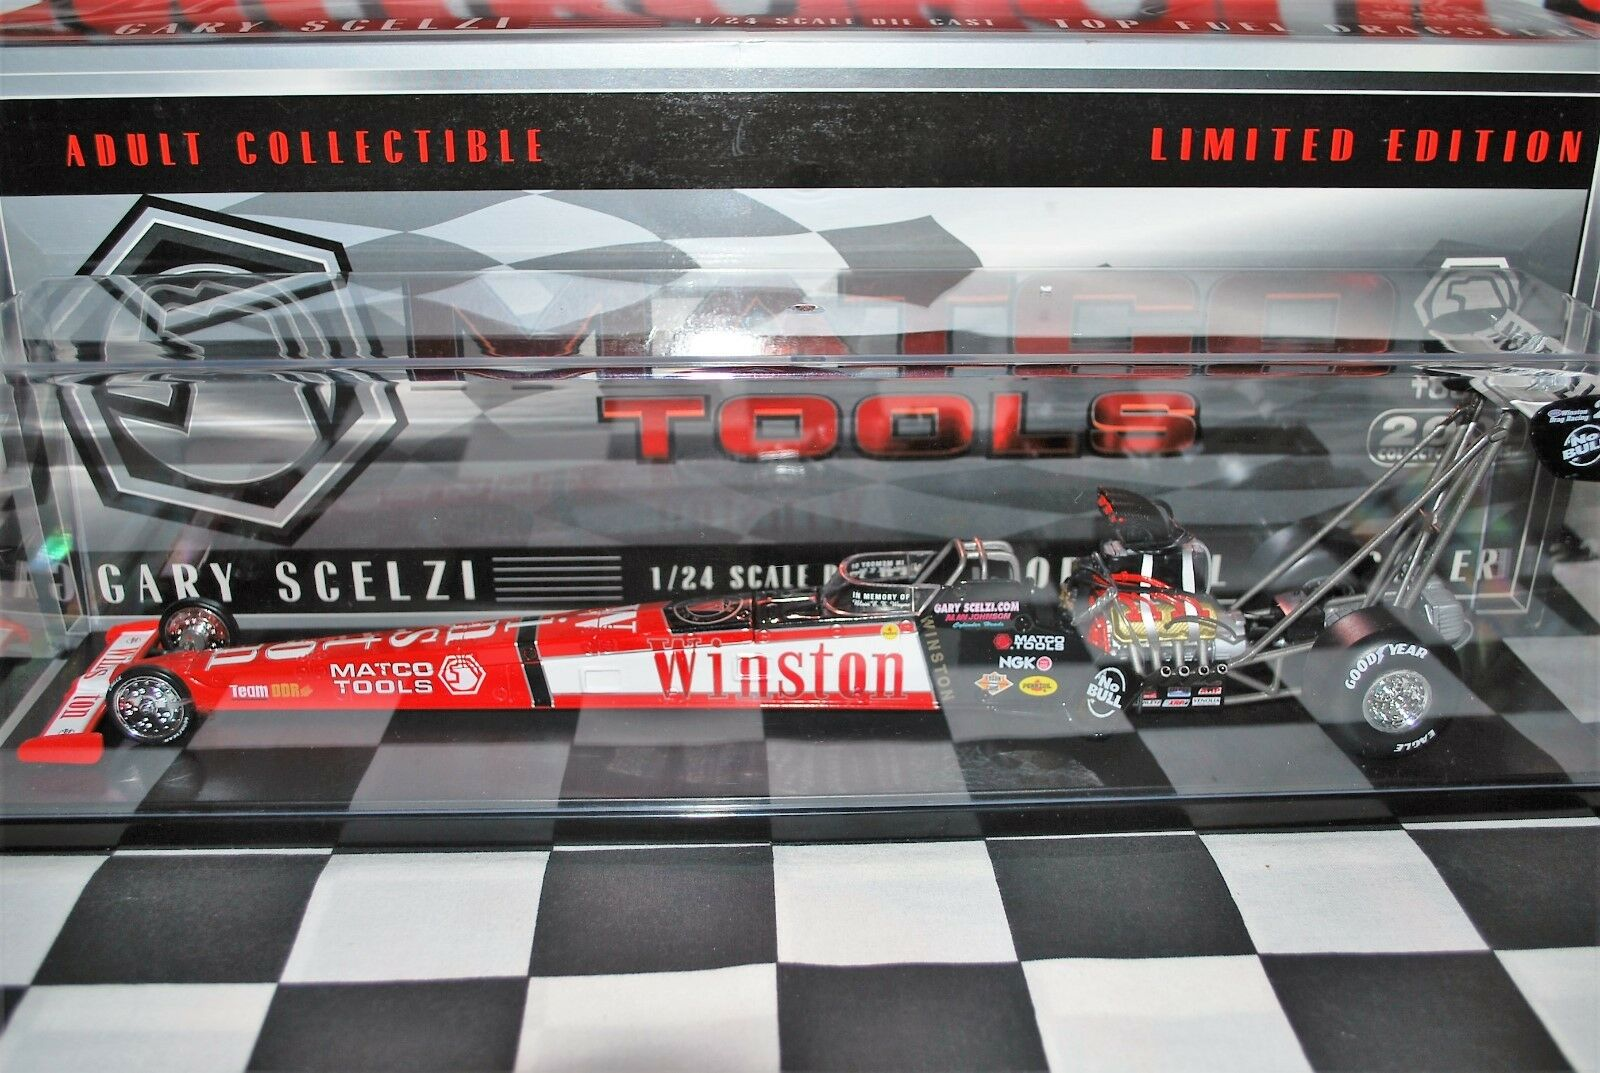 MATCO TOOLS GARY SCELZI 2001 WINSTON T0P FUEL DRAGSTER WITH CASE NHRA